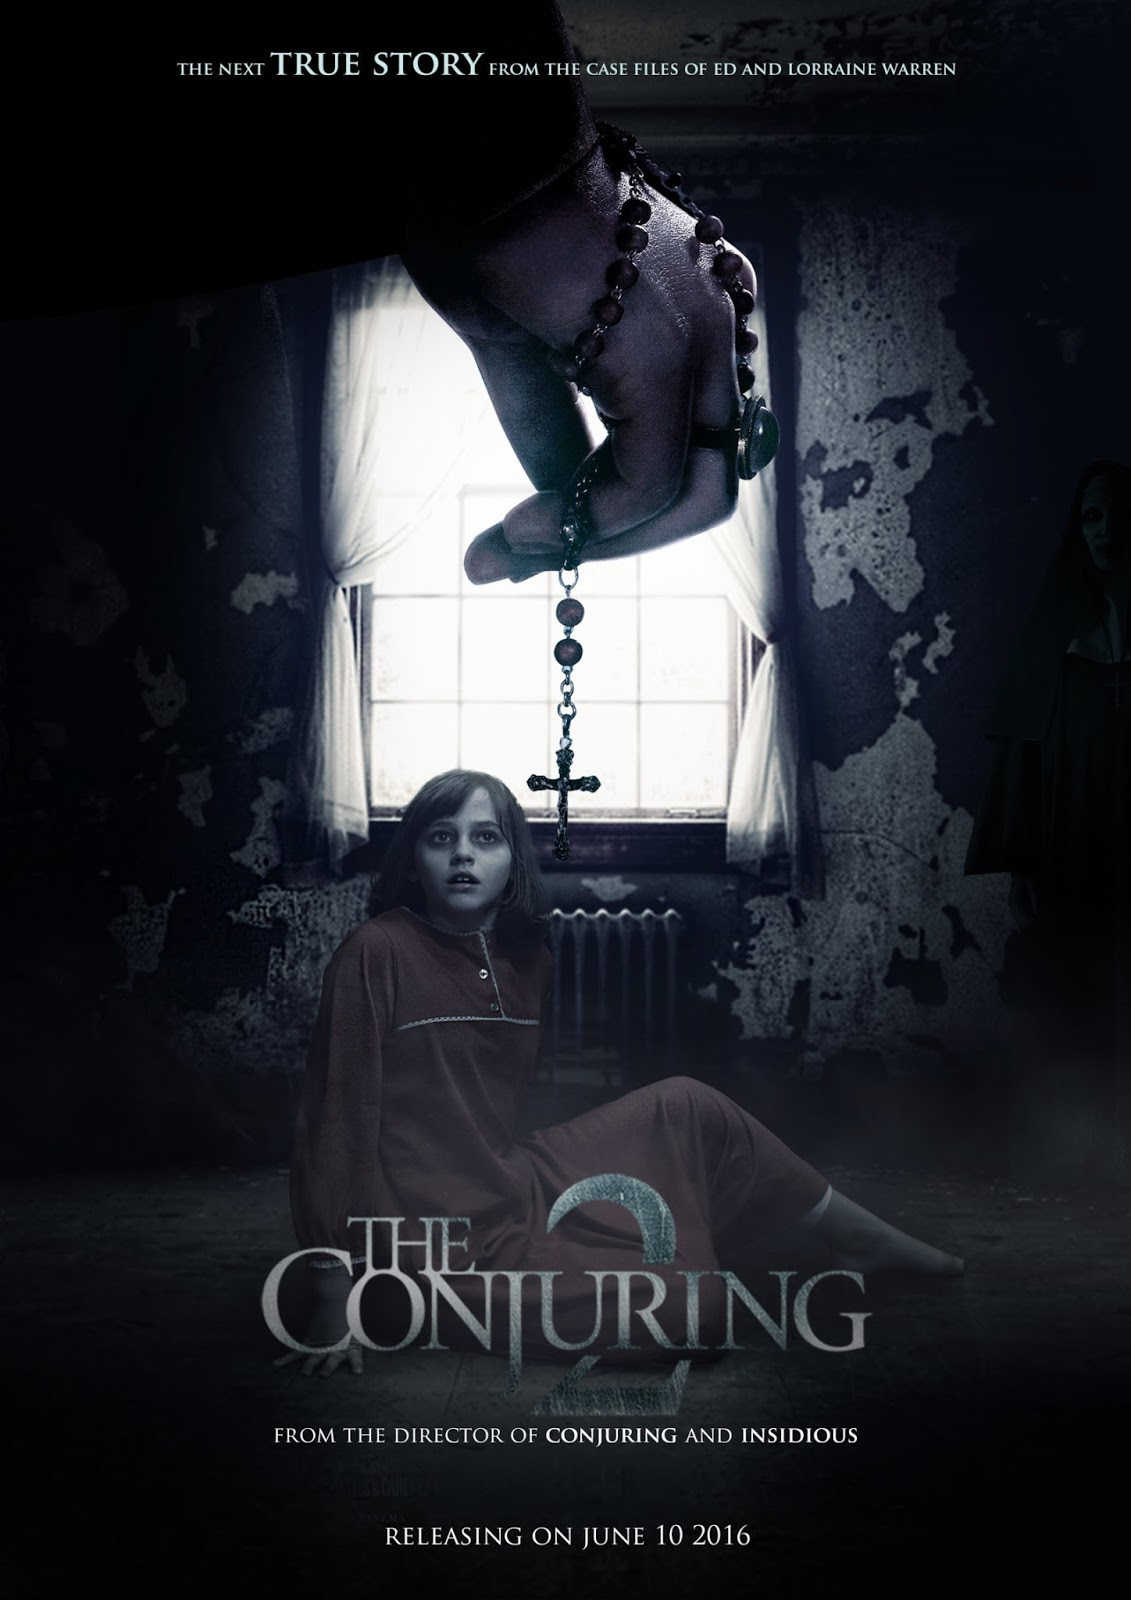 Movie The Conjuring 2: The Enfield Poltergeist (2016)